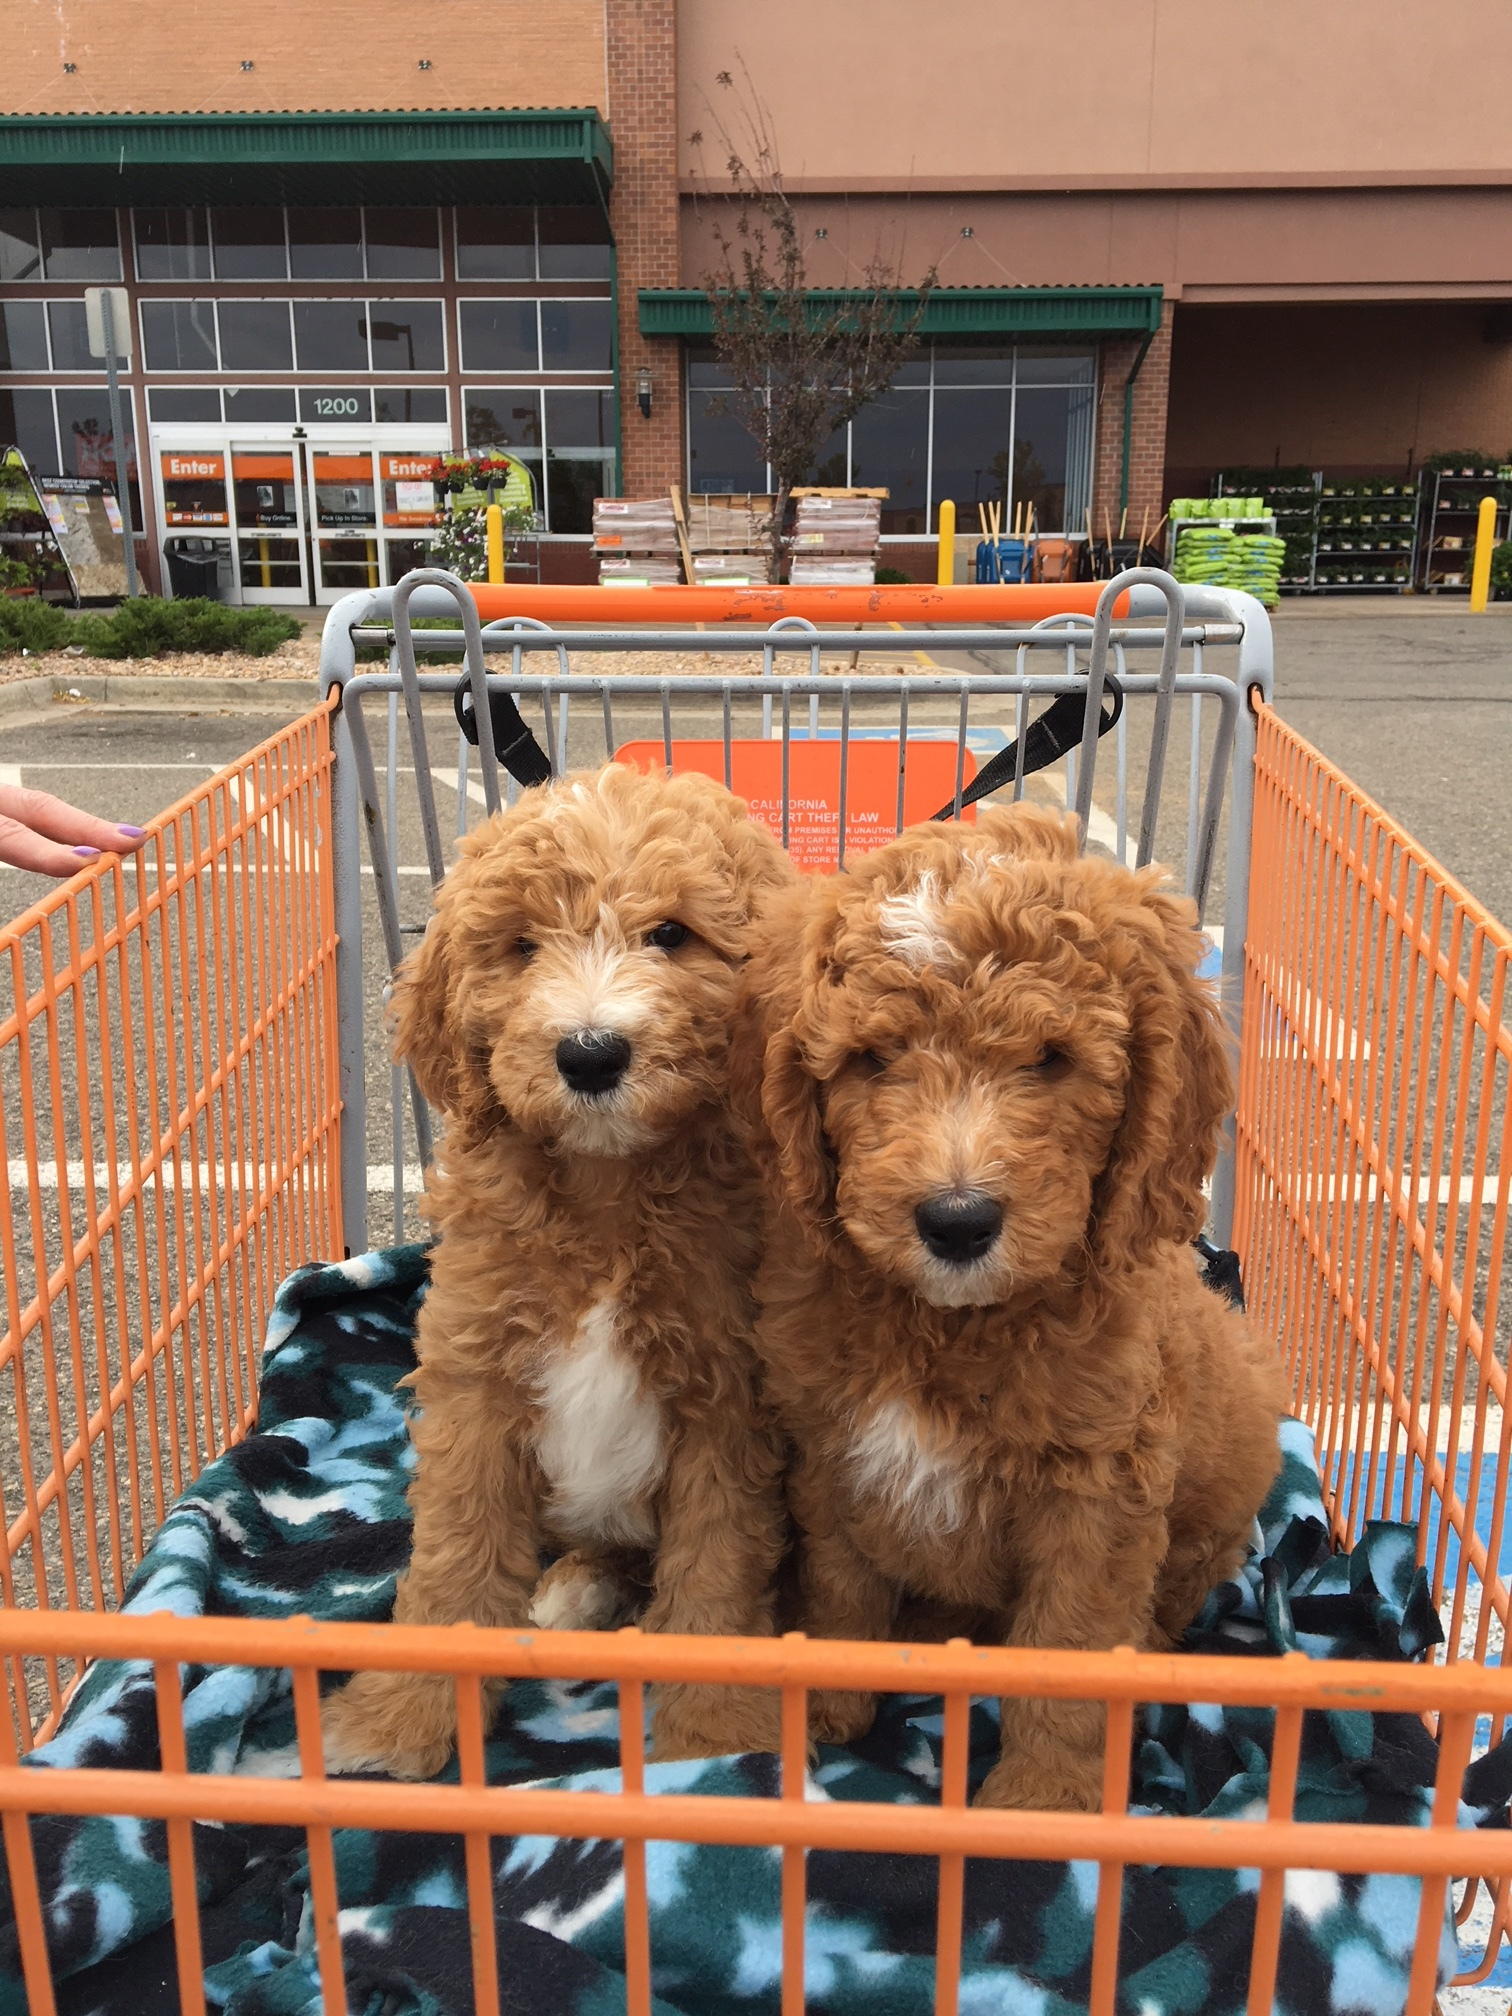 It's easy to take your pup to all sorts of stores in carts.In our experience, pups exposed to carts are comfortable later on around wheelchairs.